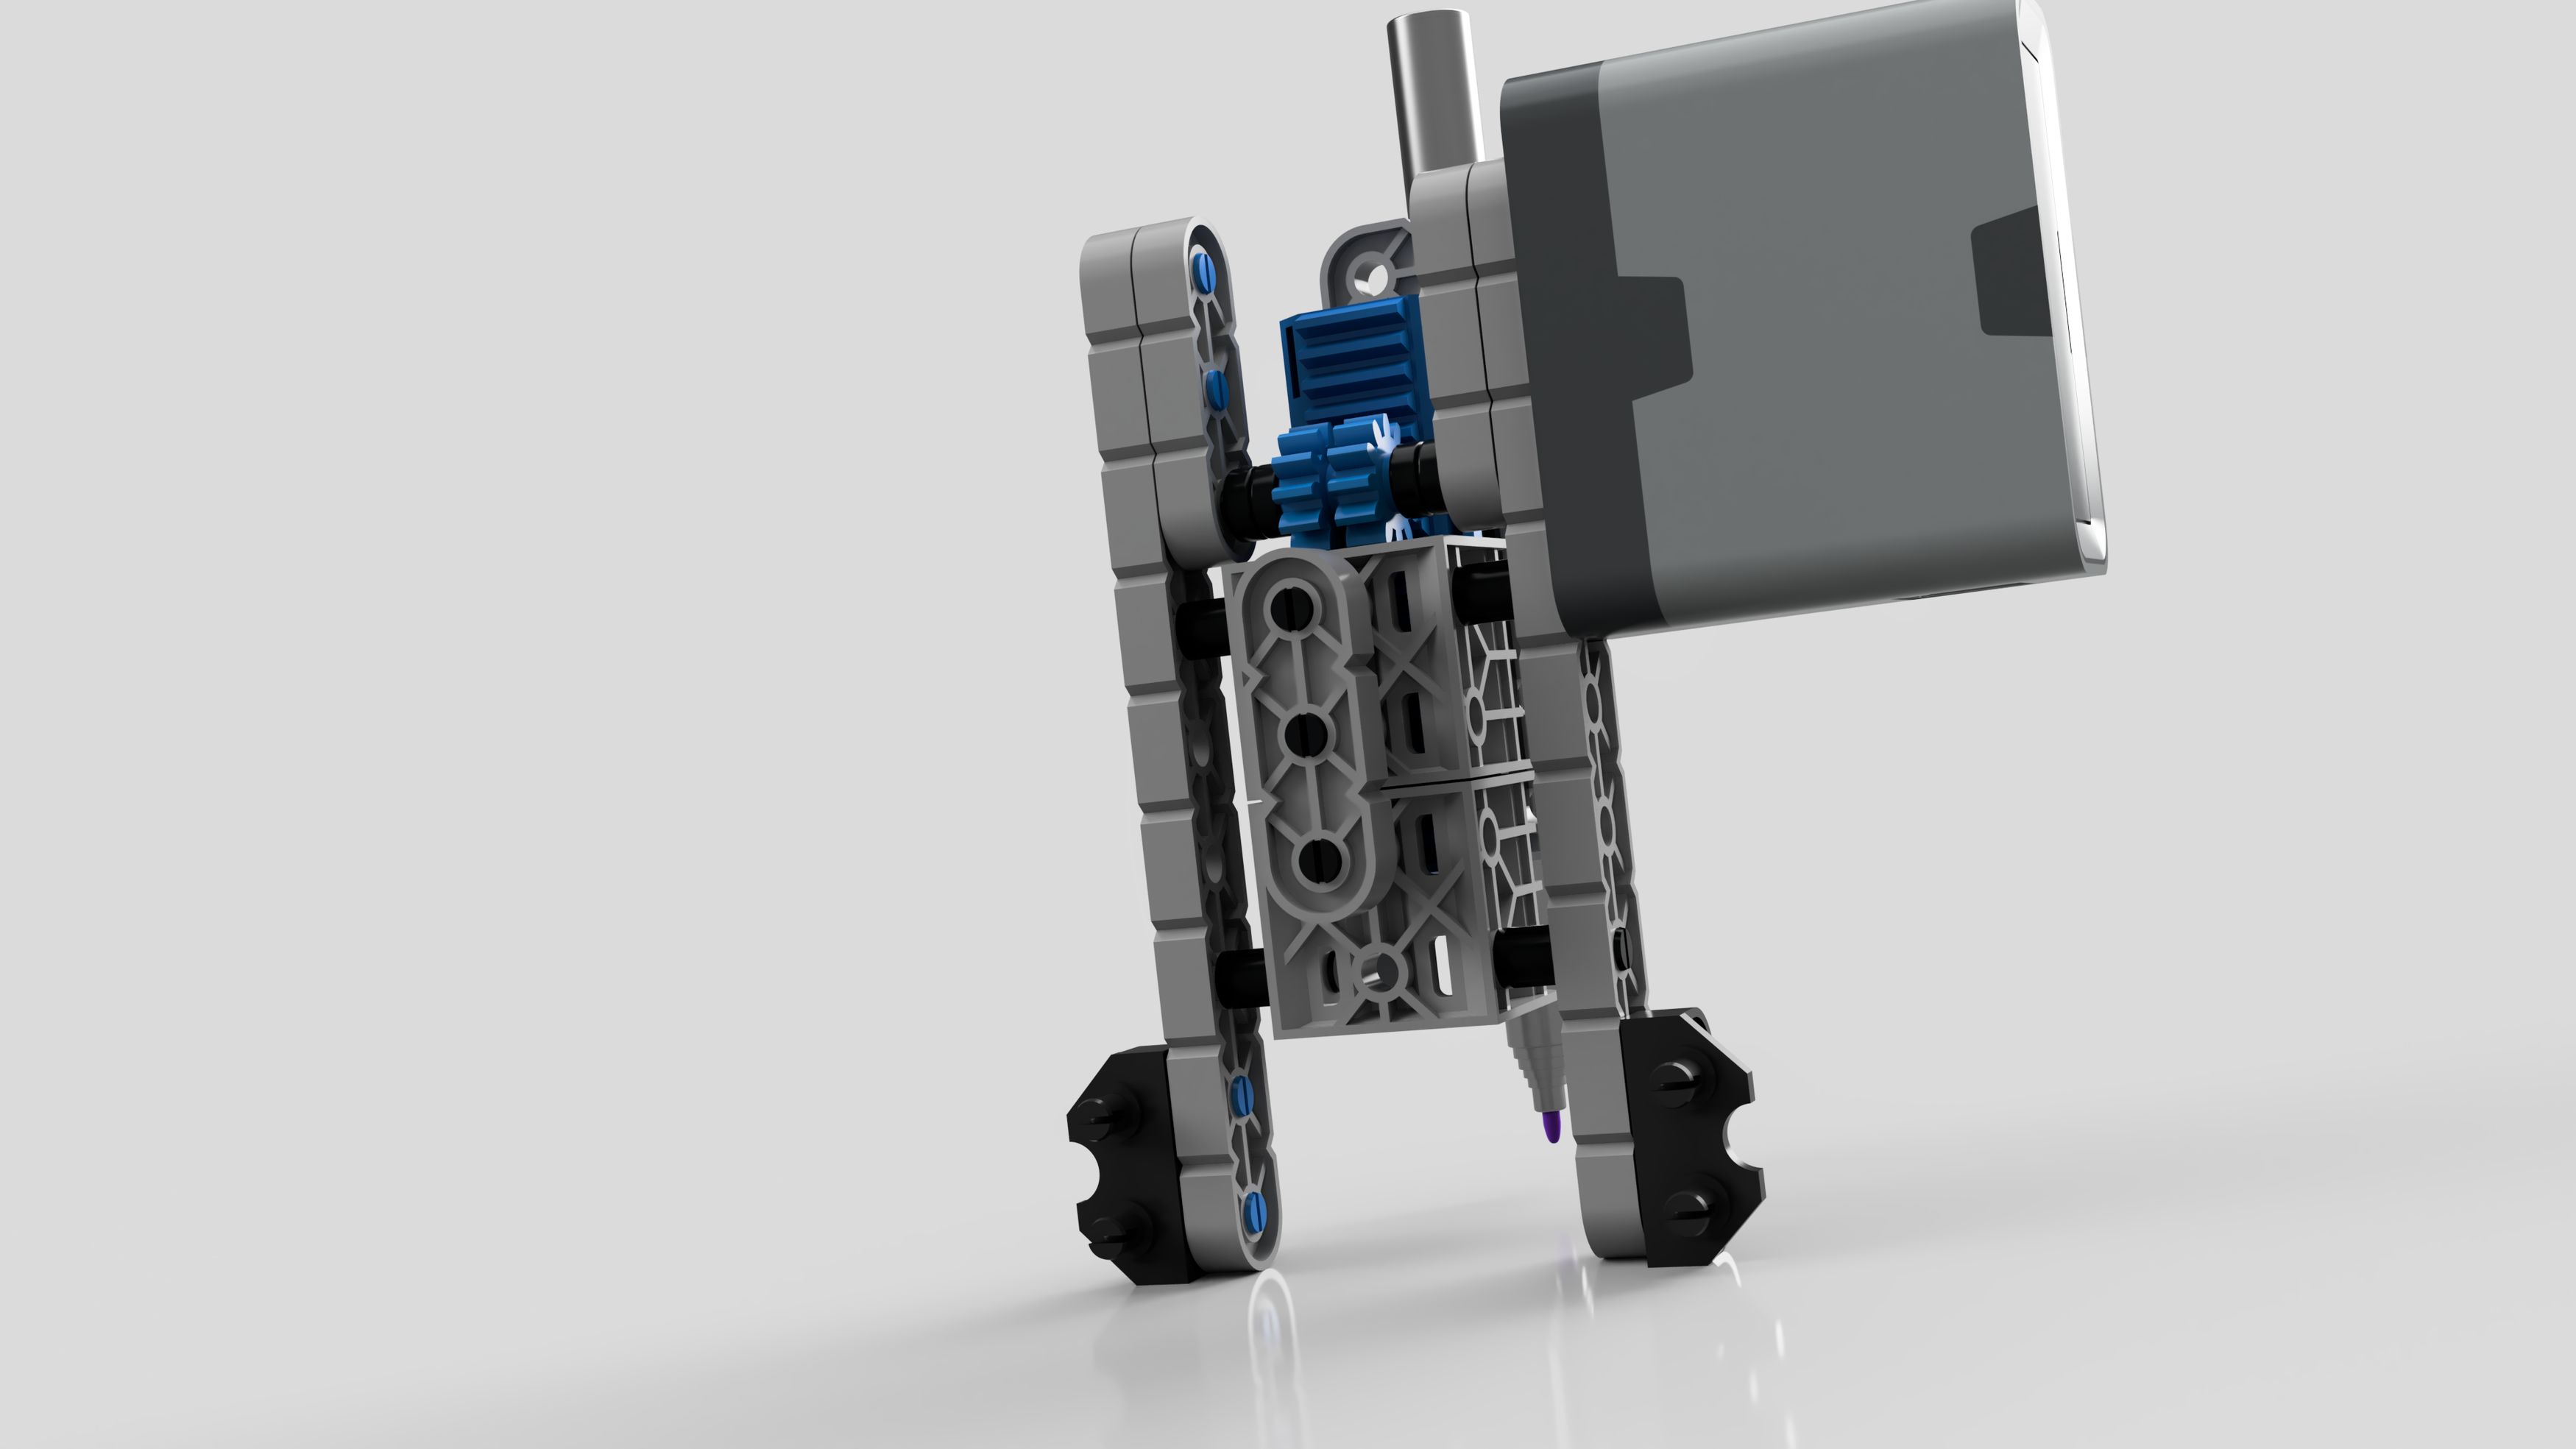 Robotic-pen-vex-iq---vexcode-vr-2020-may-21-04-42-25pm-000-customizedview22729703385-png-3500-3500